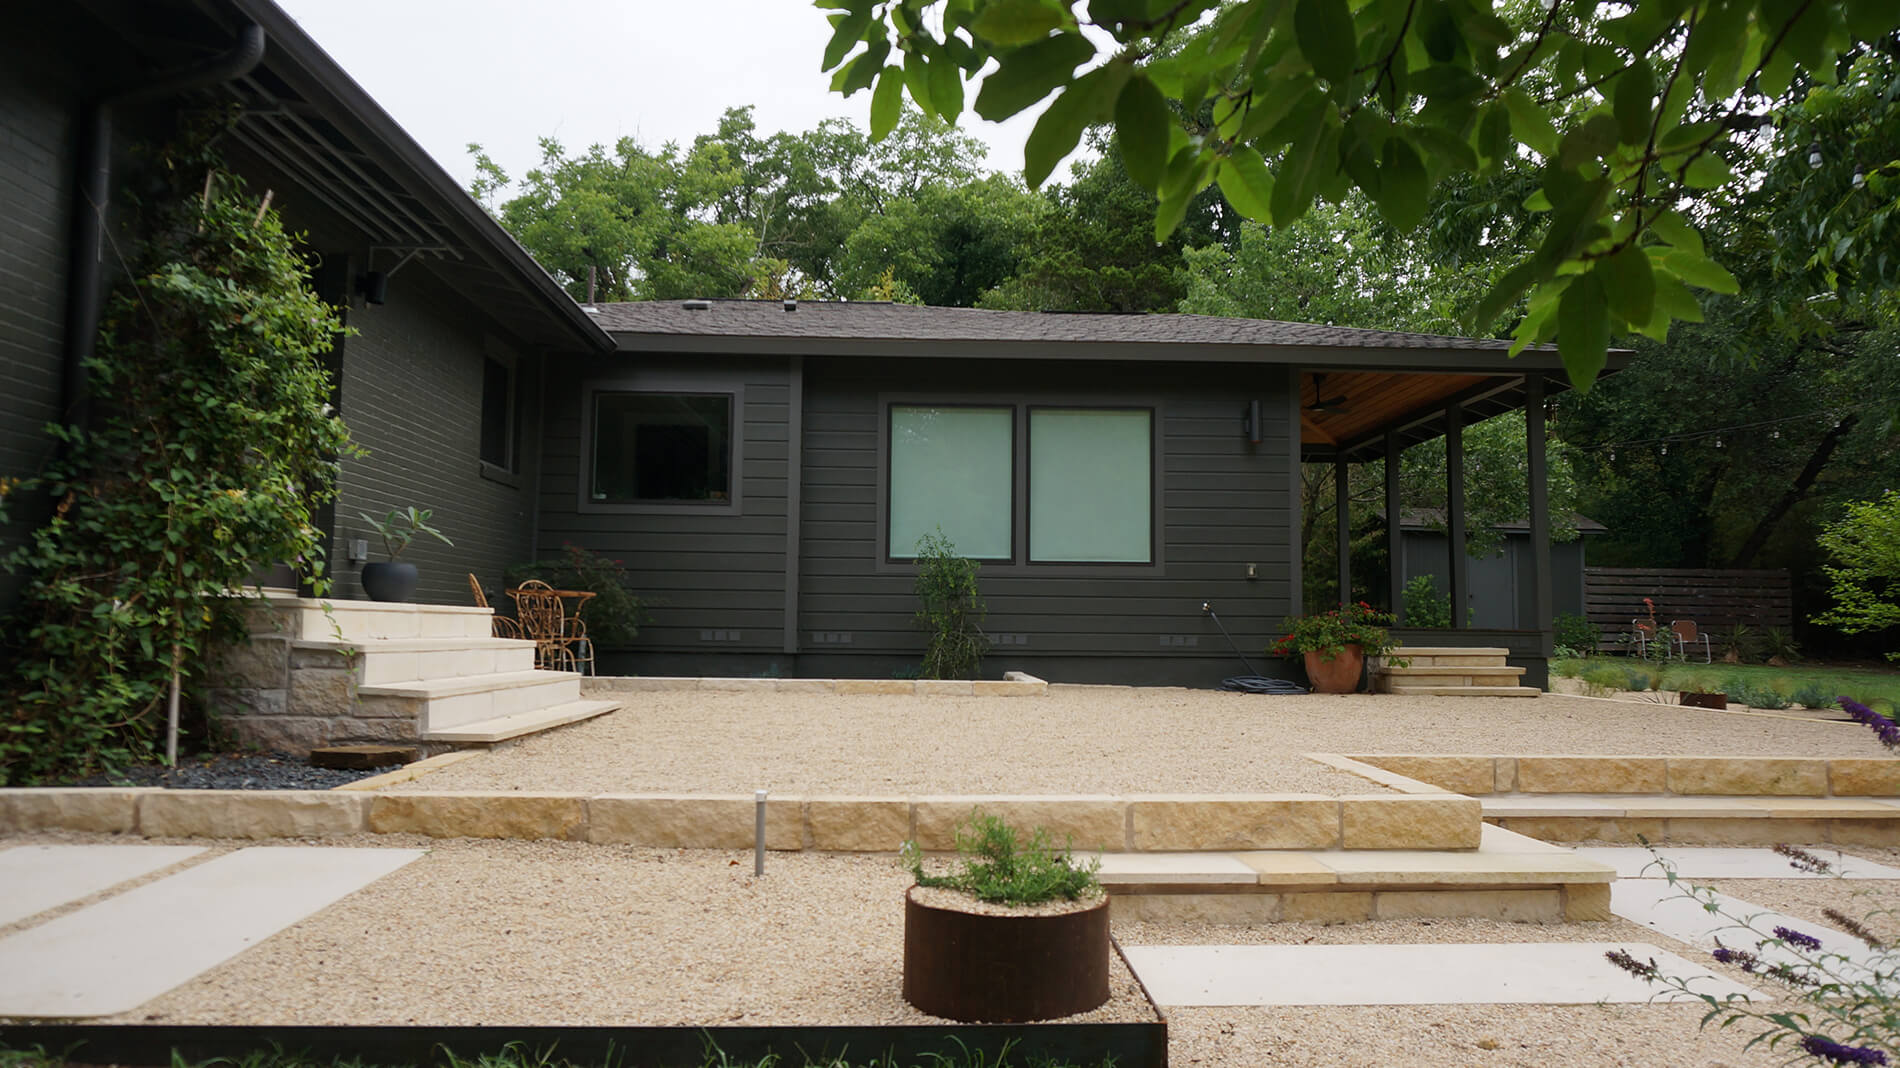 Yarrow Landscaping Has Worked With Many Clients In The Lakeway And Austin  Areas That Are Attracted To The Possibilities That A Contemporary Landscape  Design ...